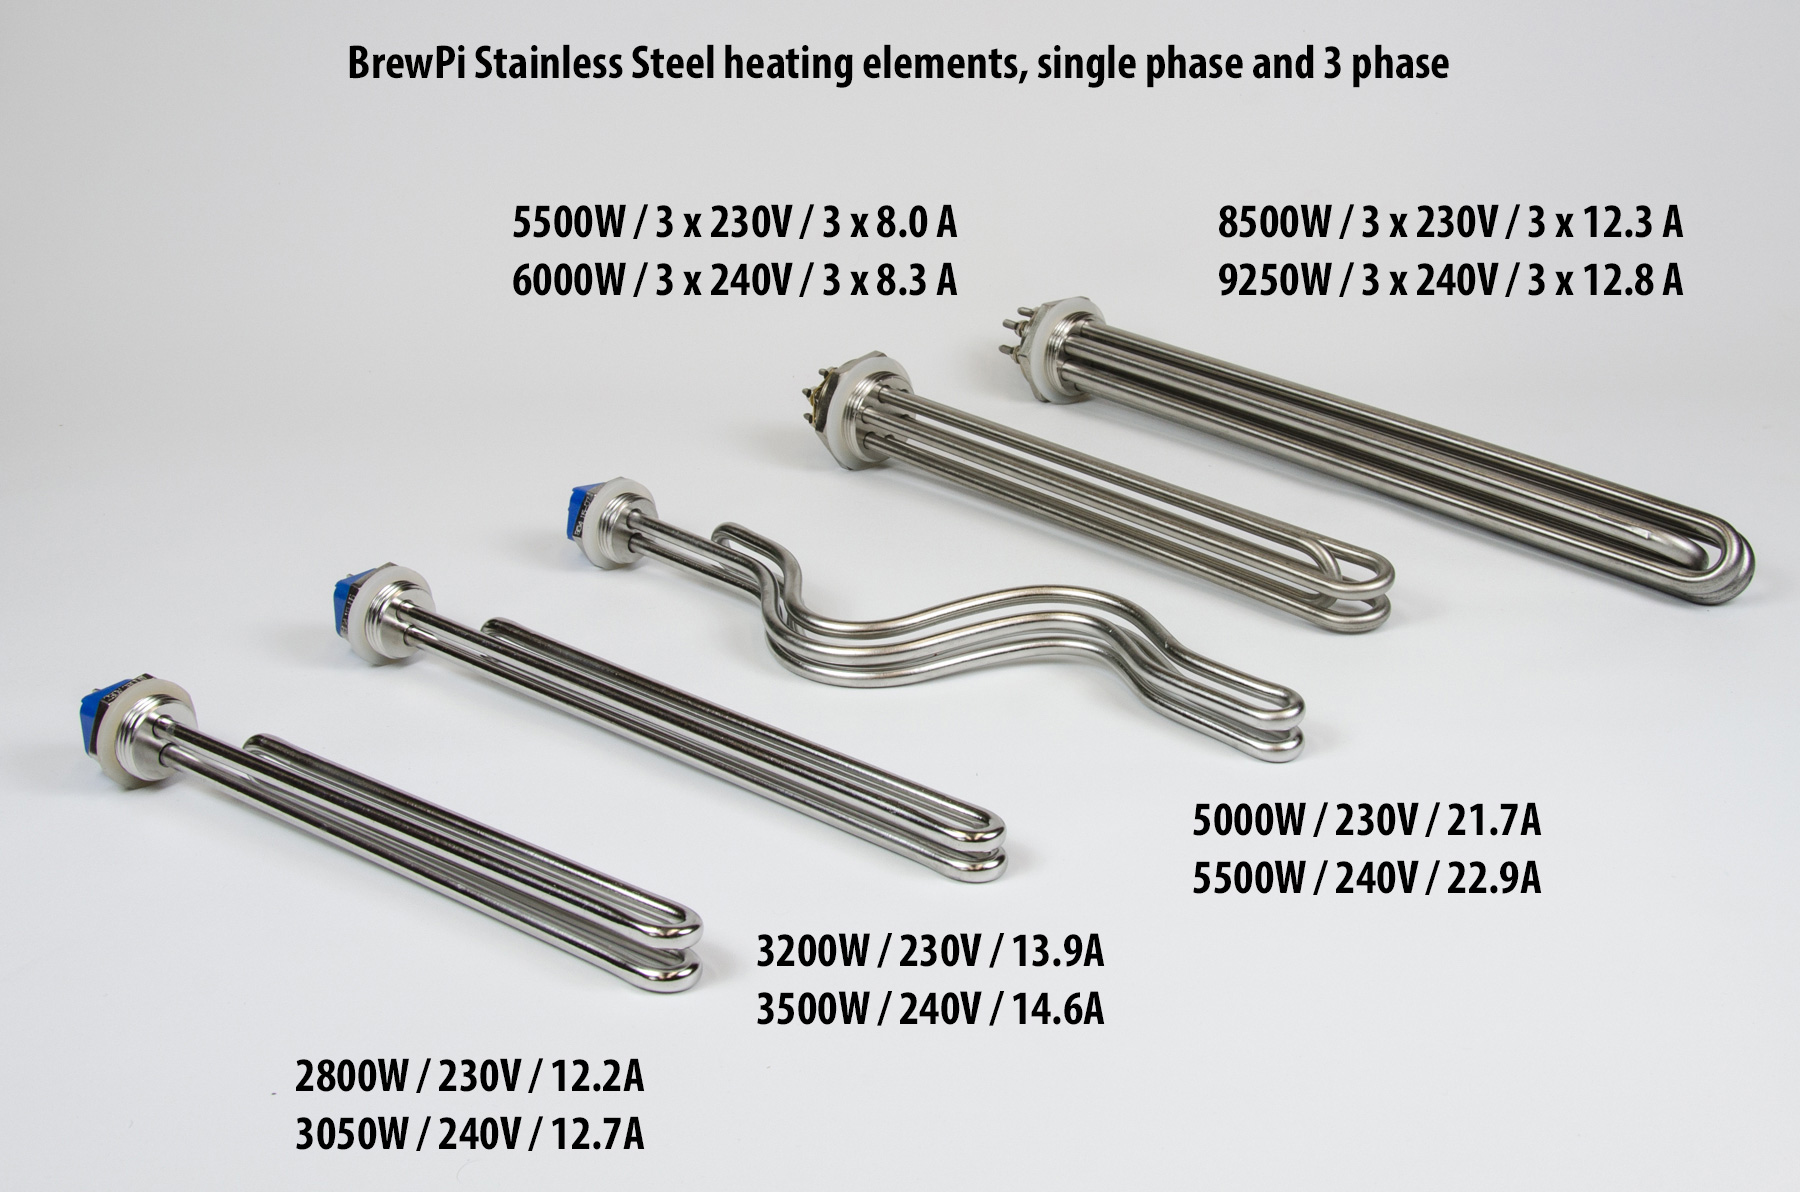 stainless steel heating elements for brewing